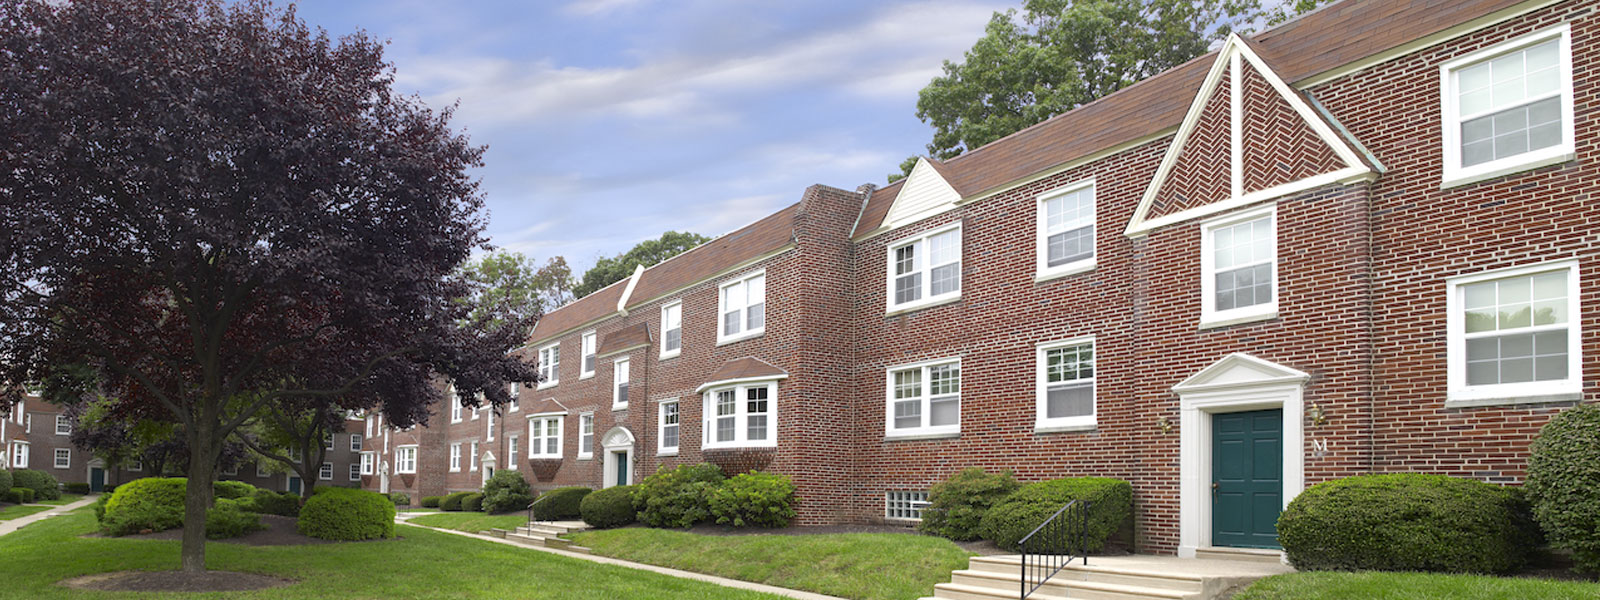 Canterbury Apartments Apartments For Rent In Mt Airy